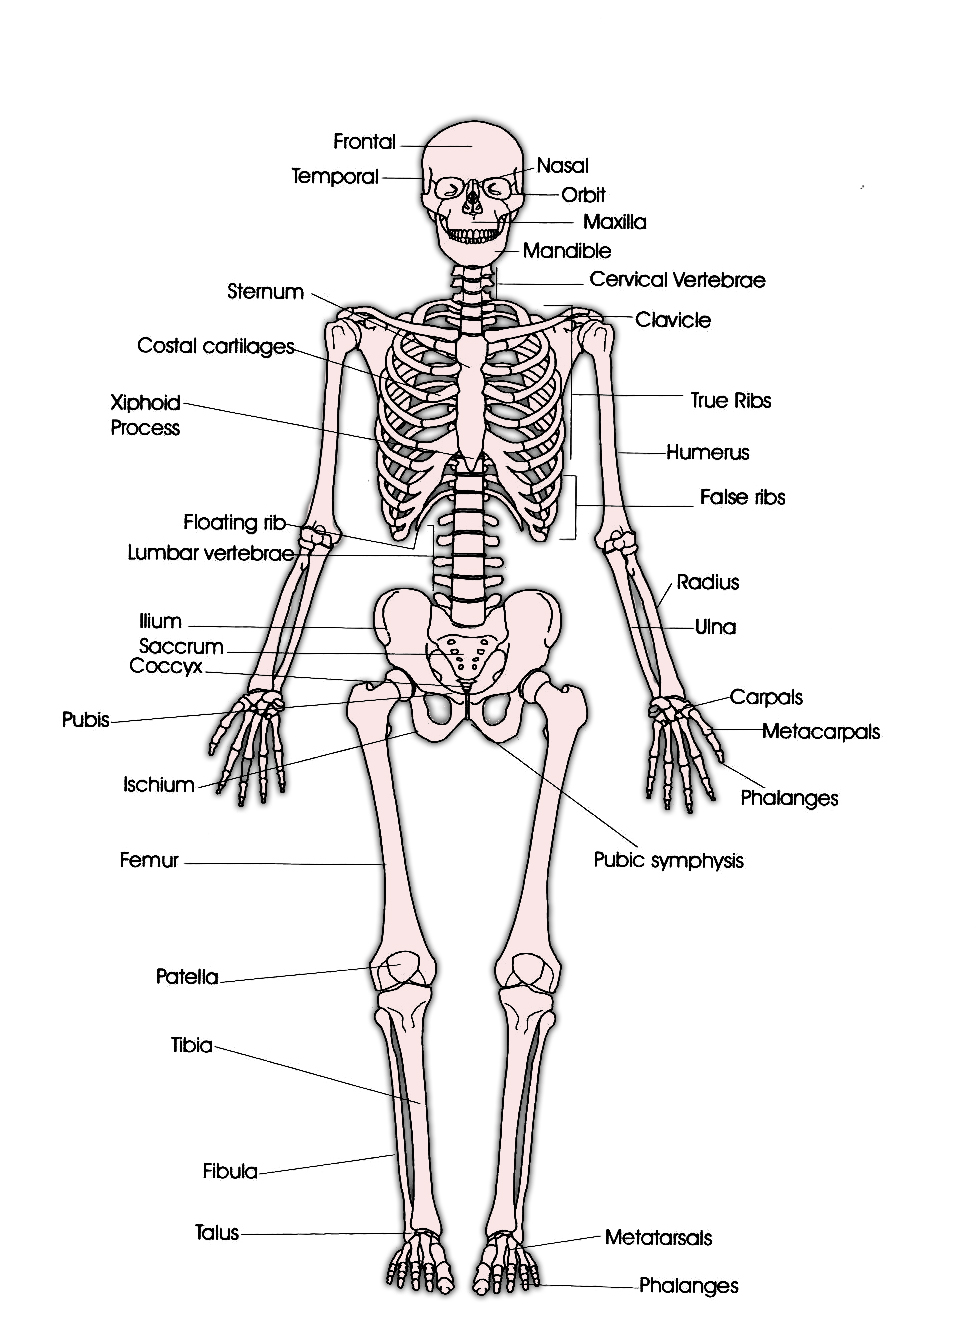 Anterior Skeleton Worksheet 6 Skeletal System With Labels – Skeletal System Diagram Worksheet